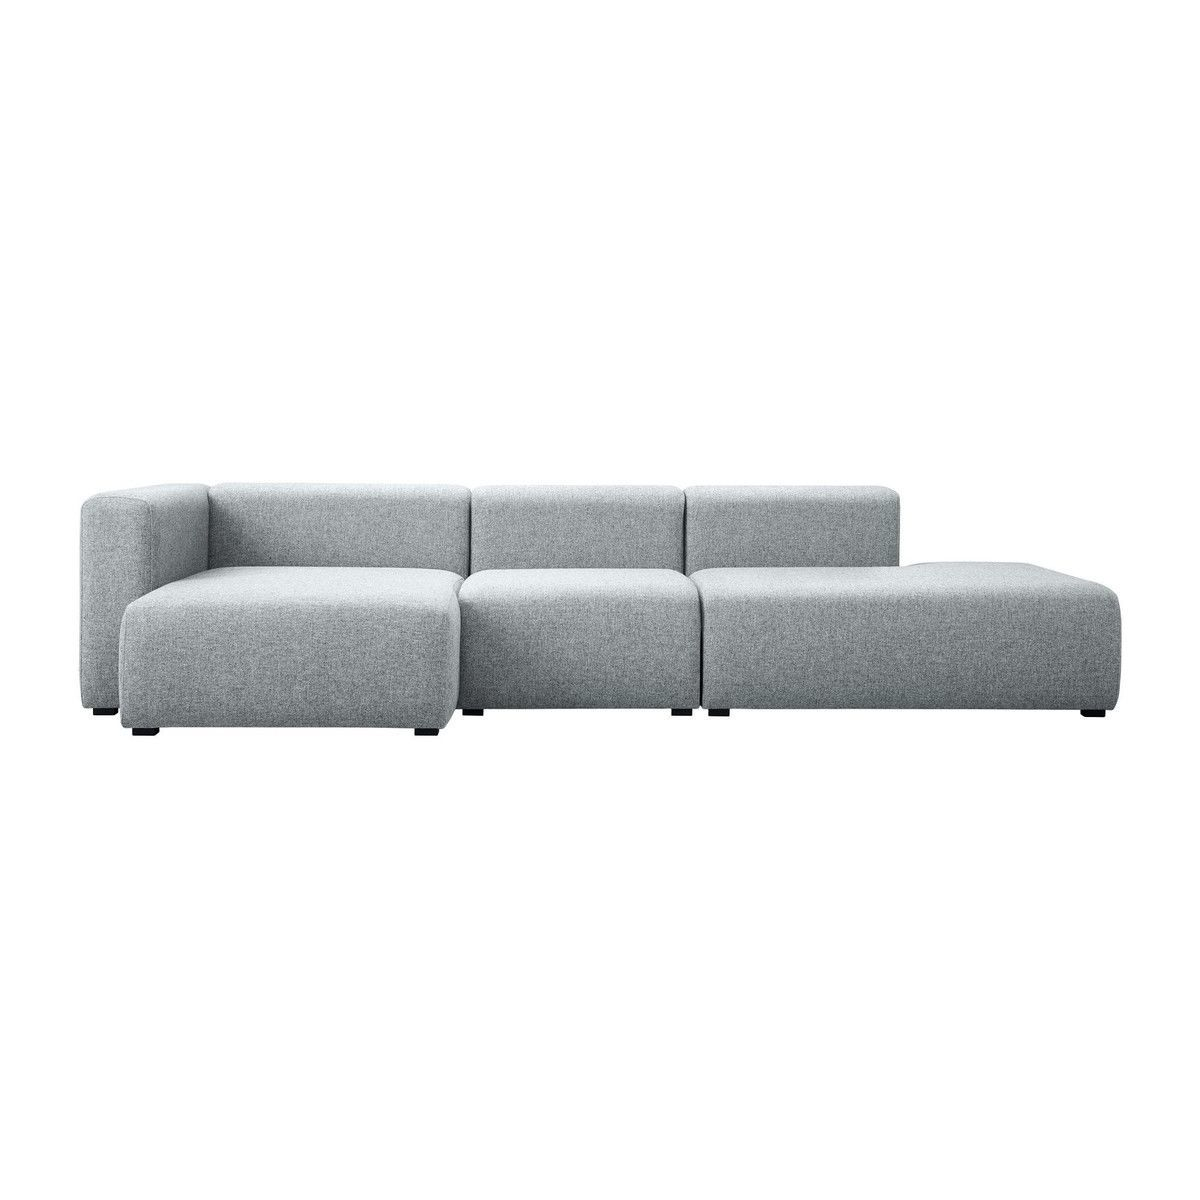 Chaise lounge sofa images sofa menzilperde net for Sofa tres plazas chaise longue